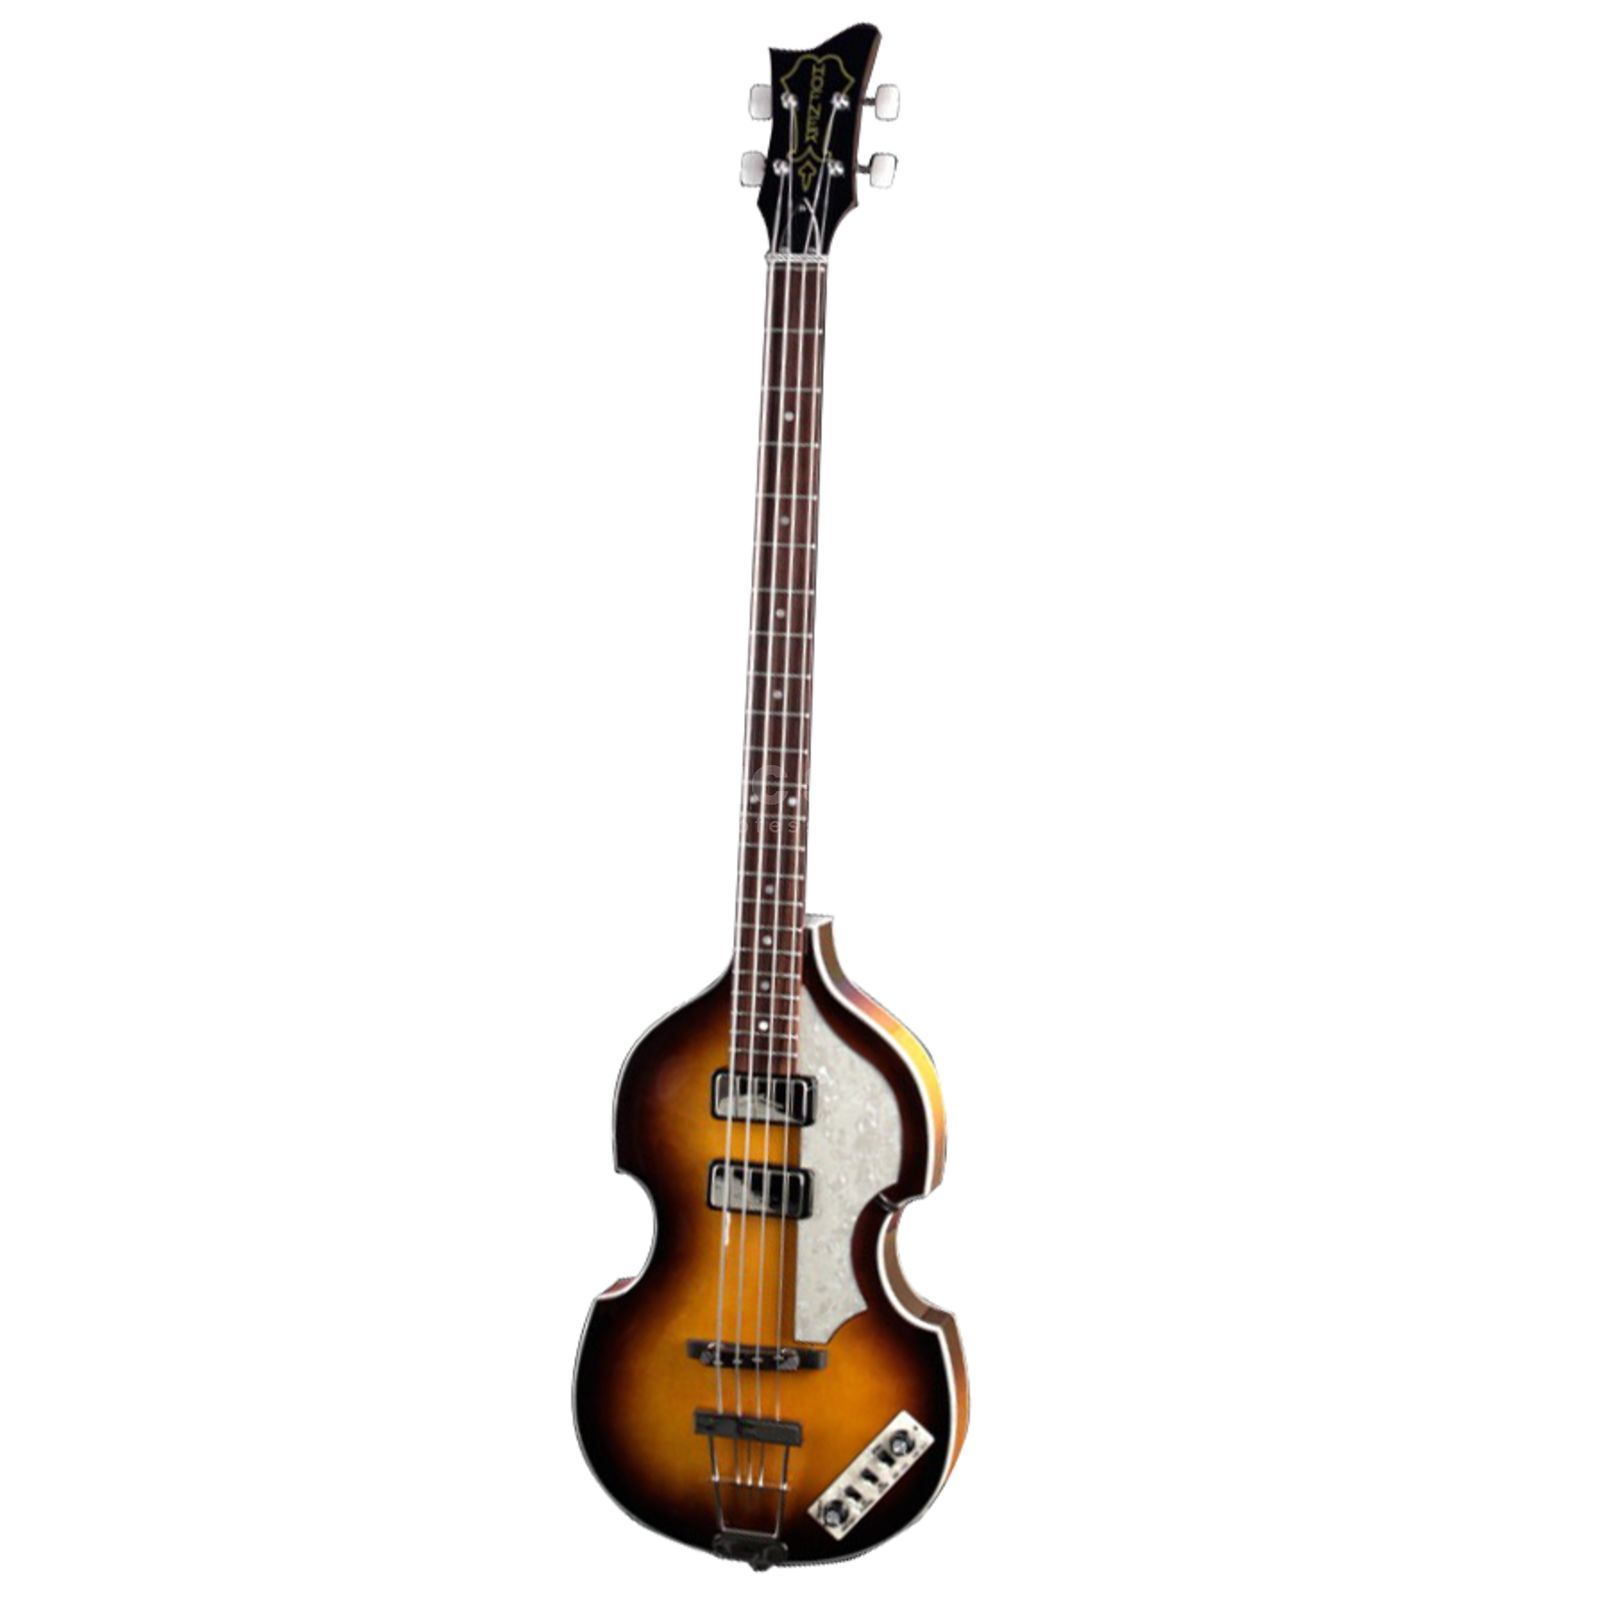 Höfner Contemp. Violin Bass 500/1-CV Sunburst B-Stock Product Image